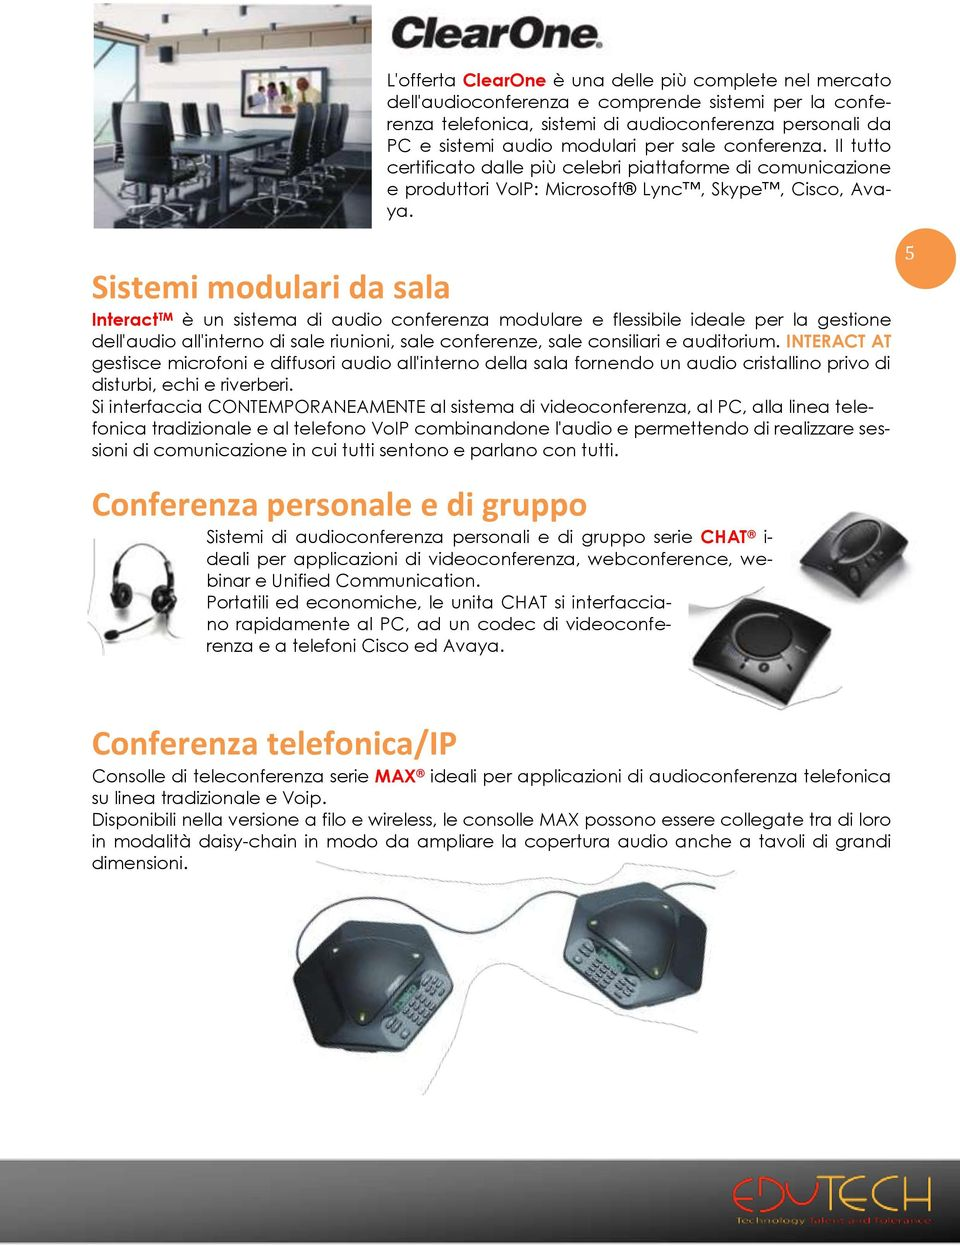 Sistemi modulari da sala Interact TM è un sistema di audio conferenza modulare e flessibile ideale per la gestione dell'audio all'interno di sale riunioni, sale conferenze, sale consiliari e